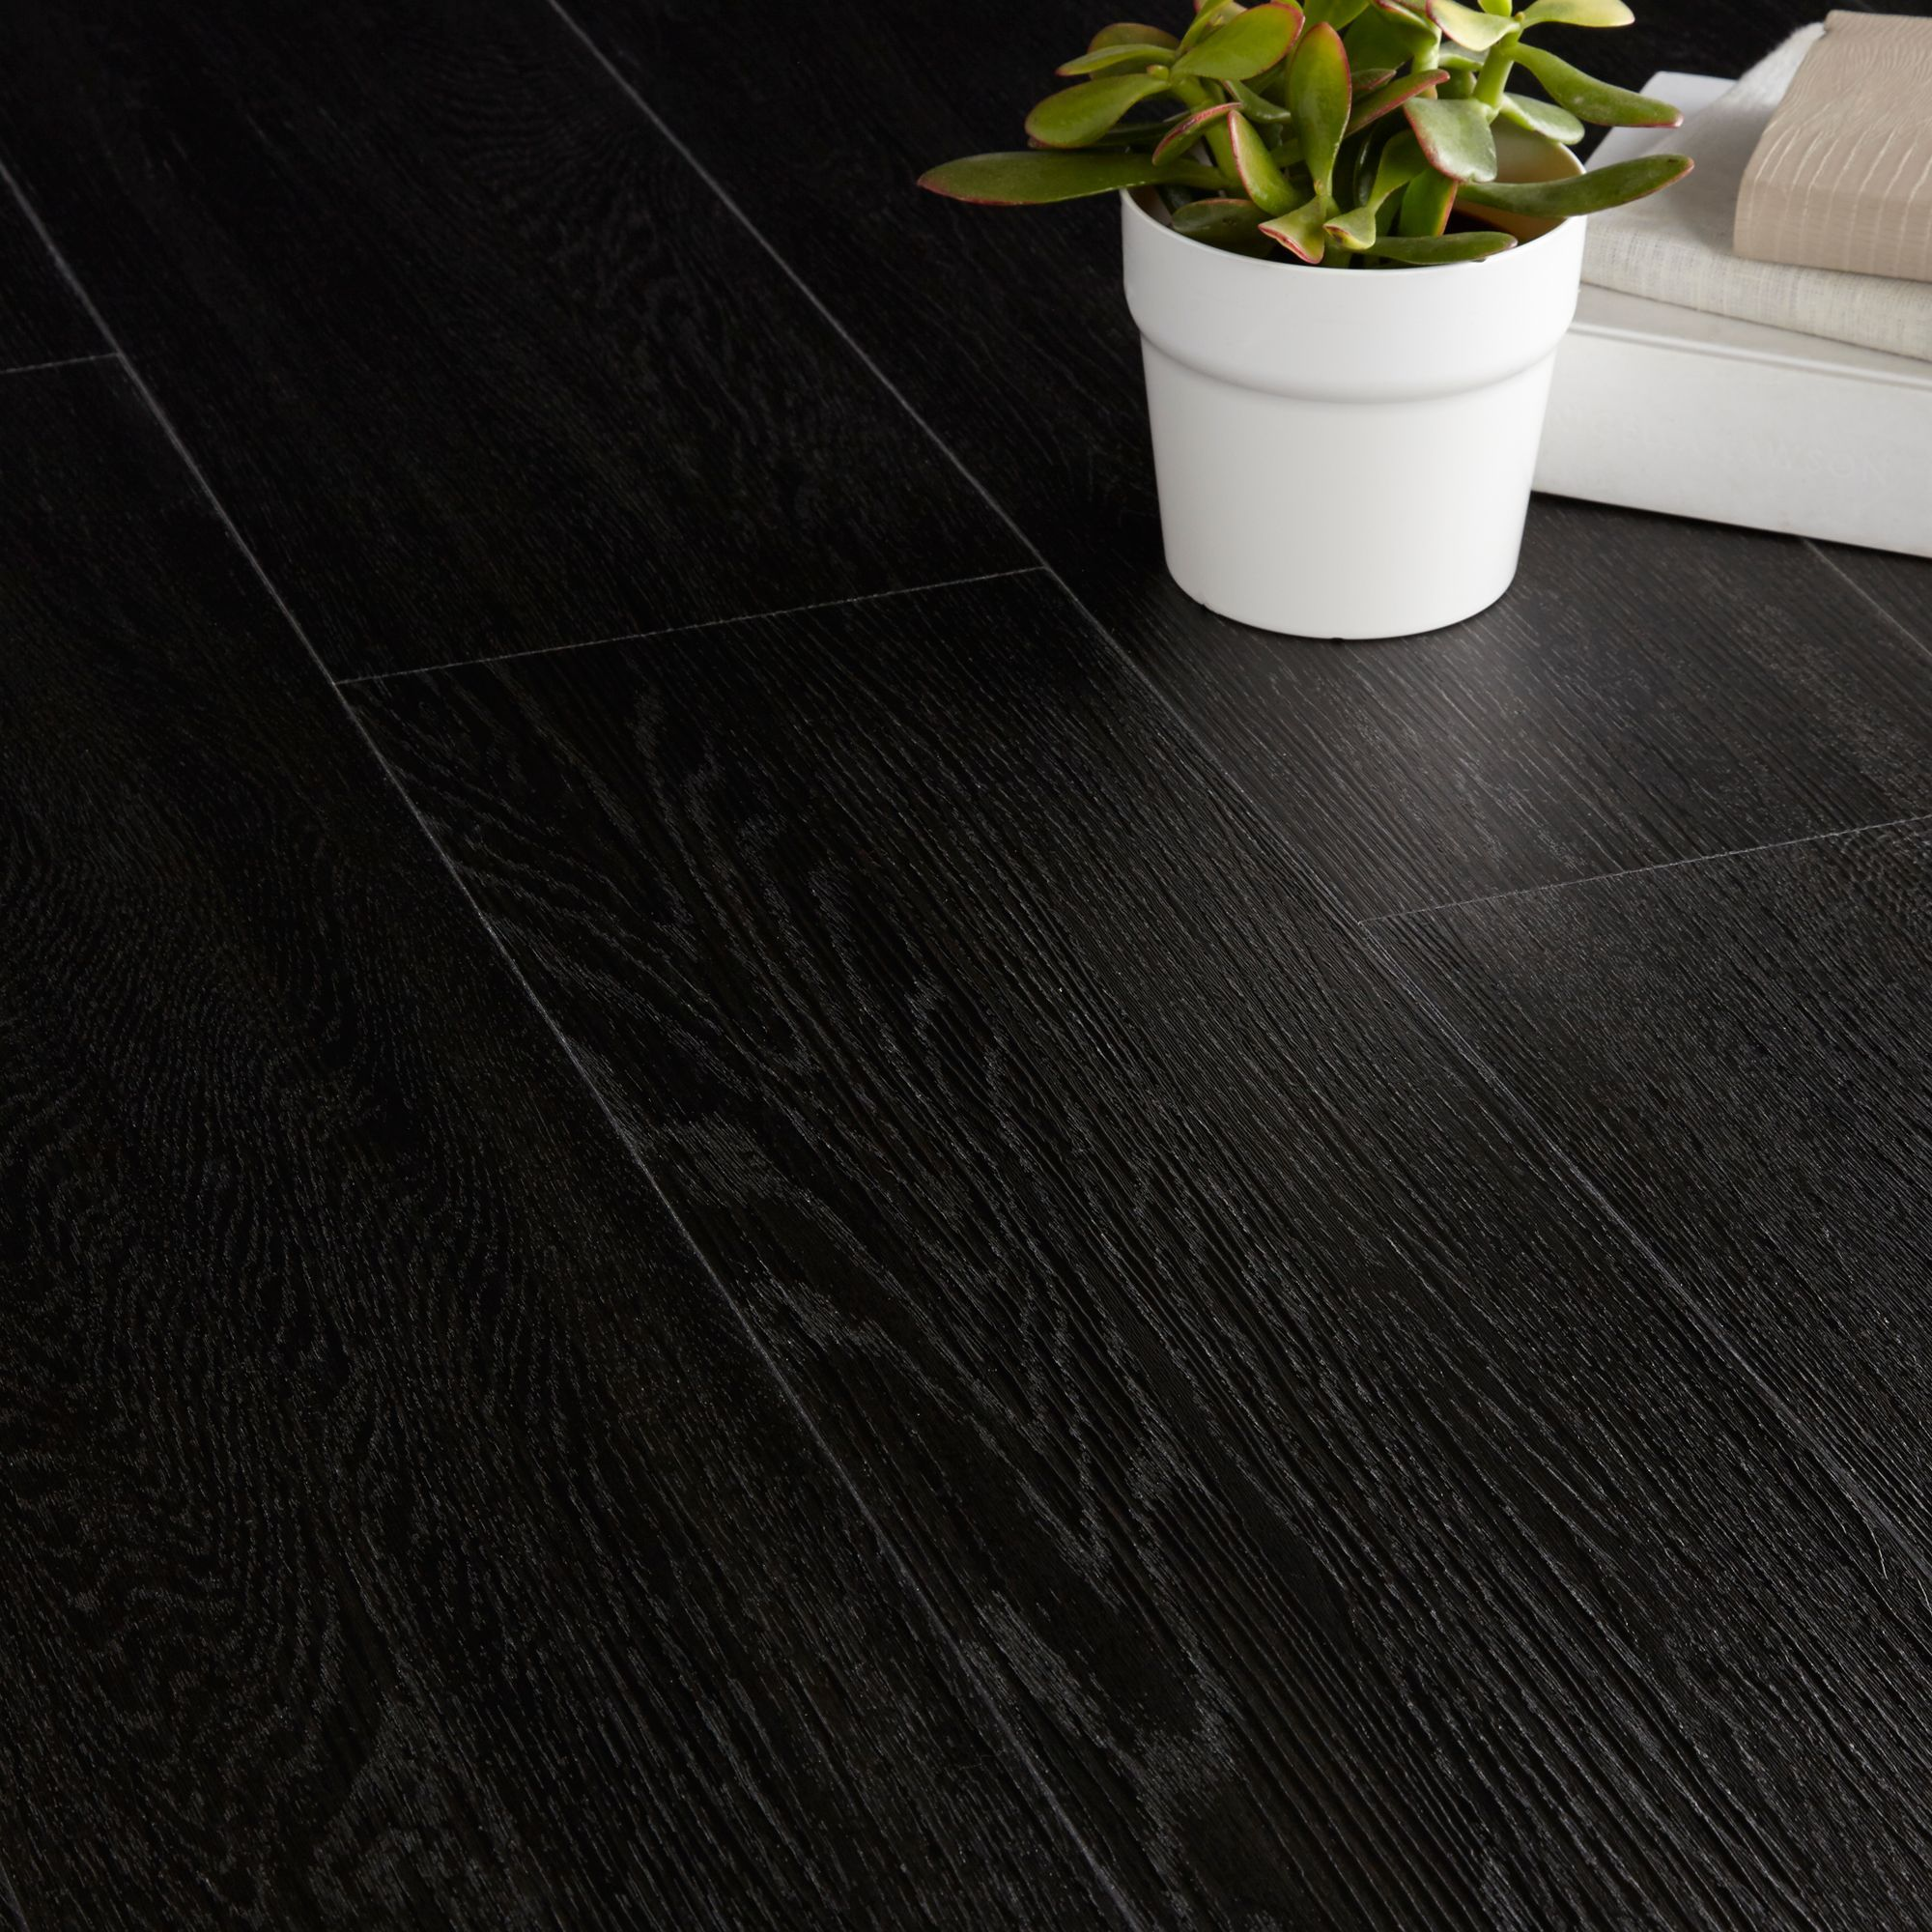 colours brown ebony effect luxury vinyl click flooring 1 76 m pack